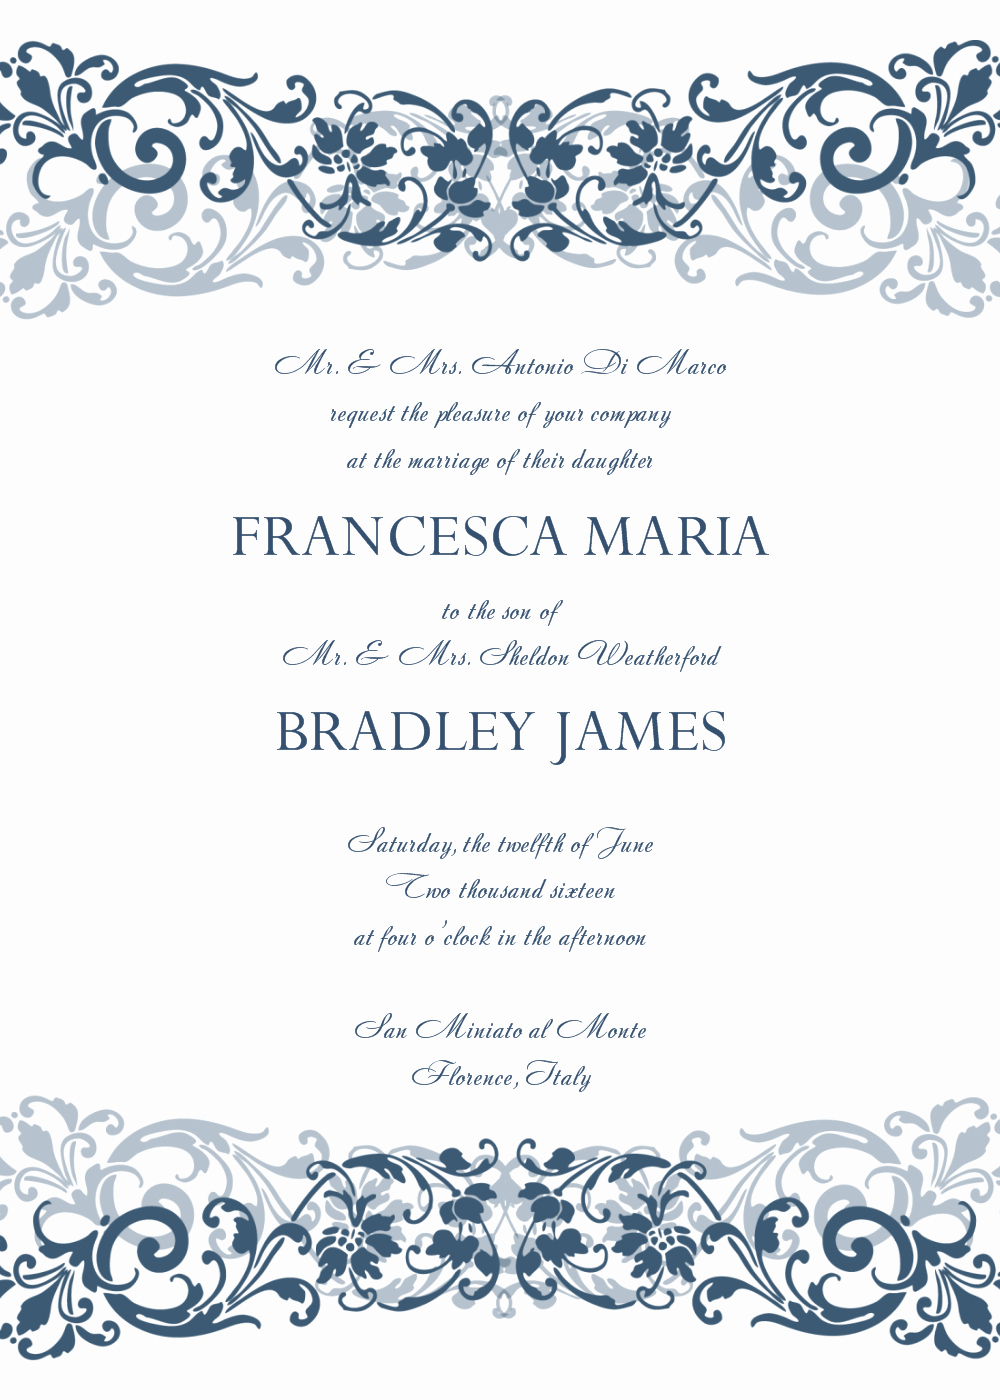 Microsoft Graduation Invitation Templates Unique 8 Free Wedding Invitation Templates Excel Pdf formats